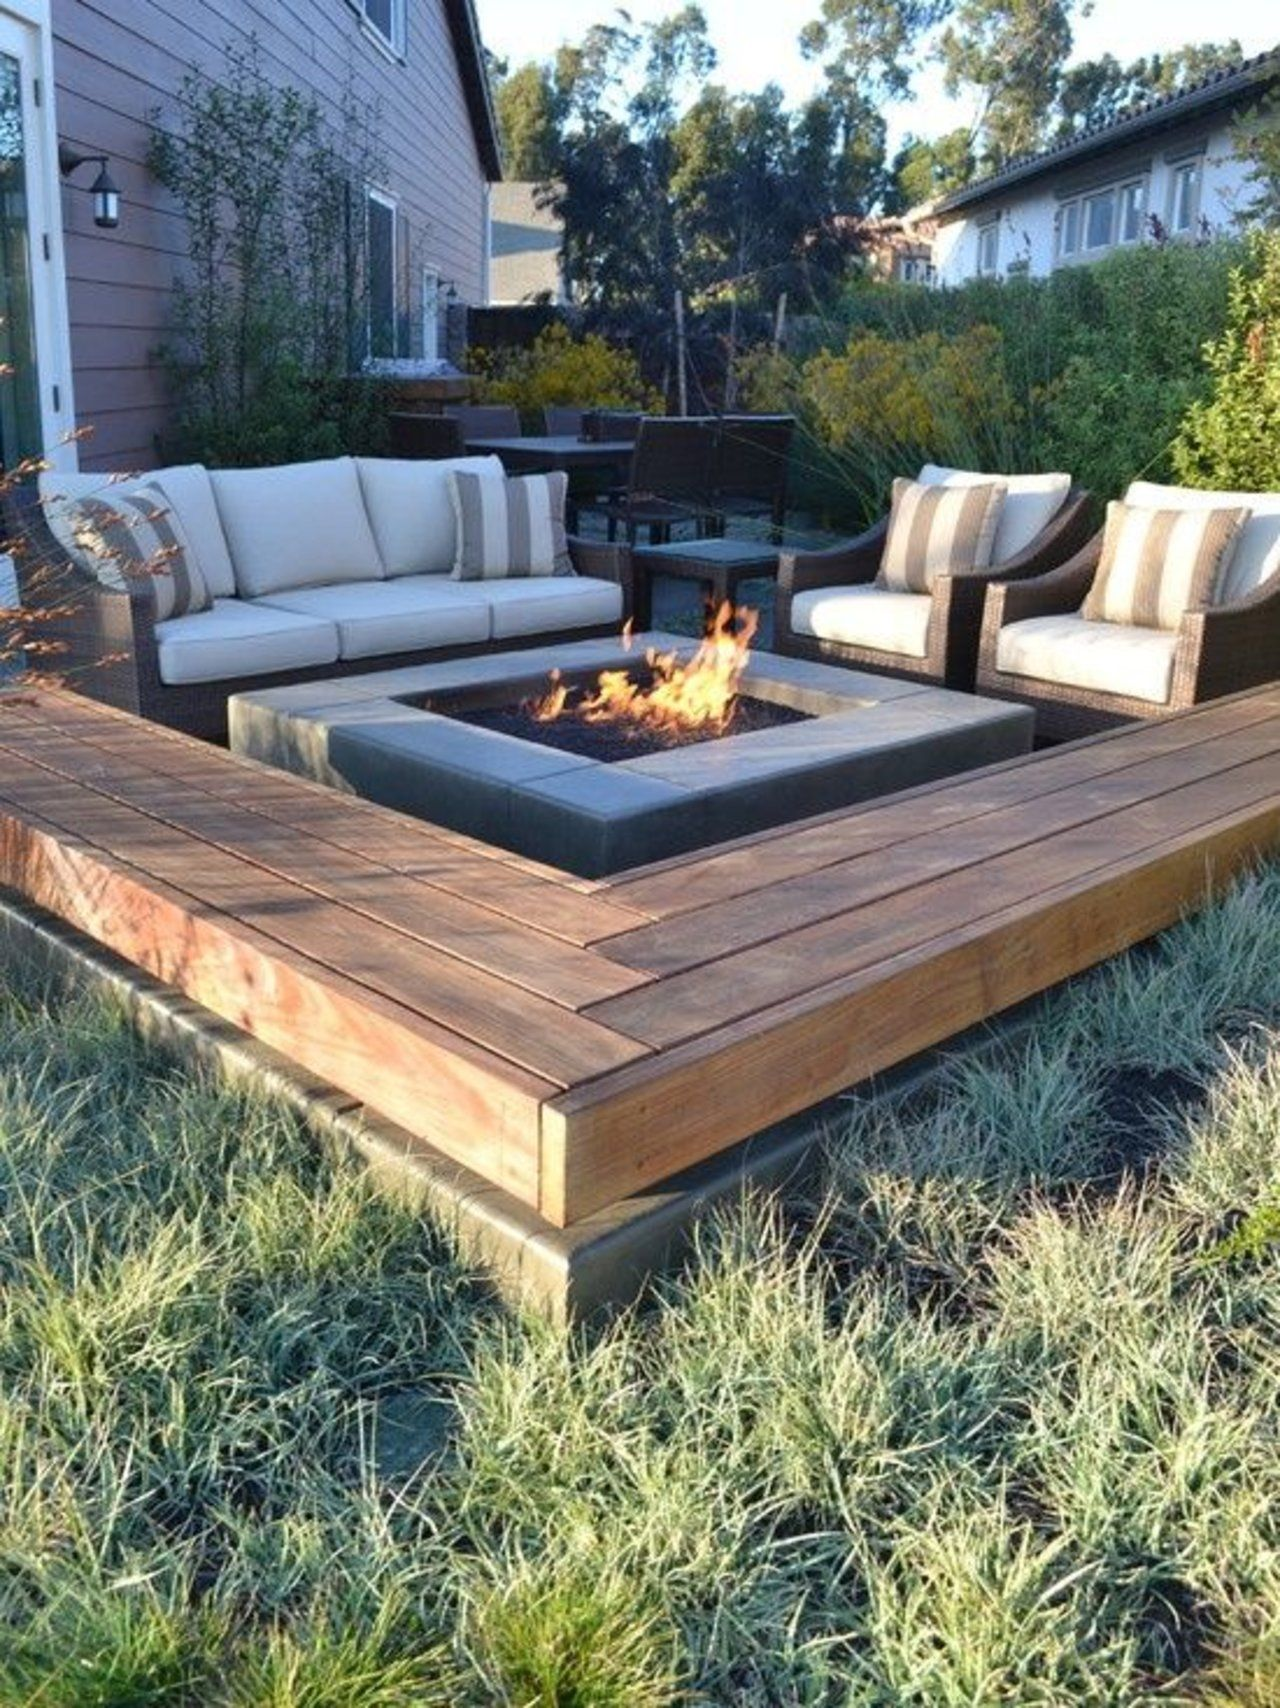 Backyard patio firepit ideas - The Secrets To The Best Backyards On Pinterest